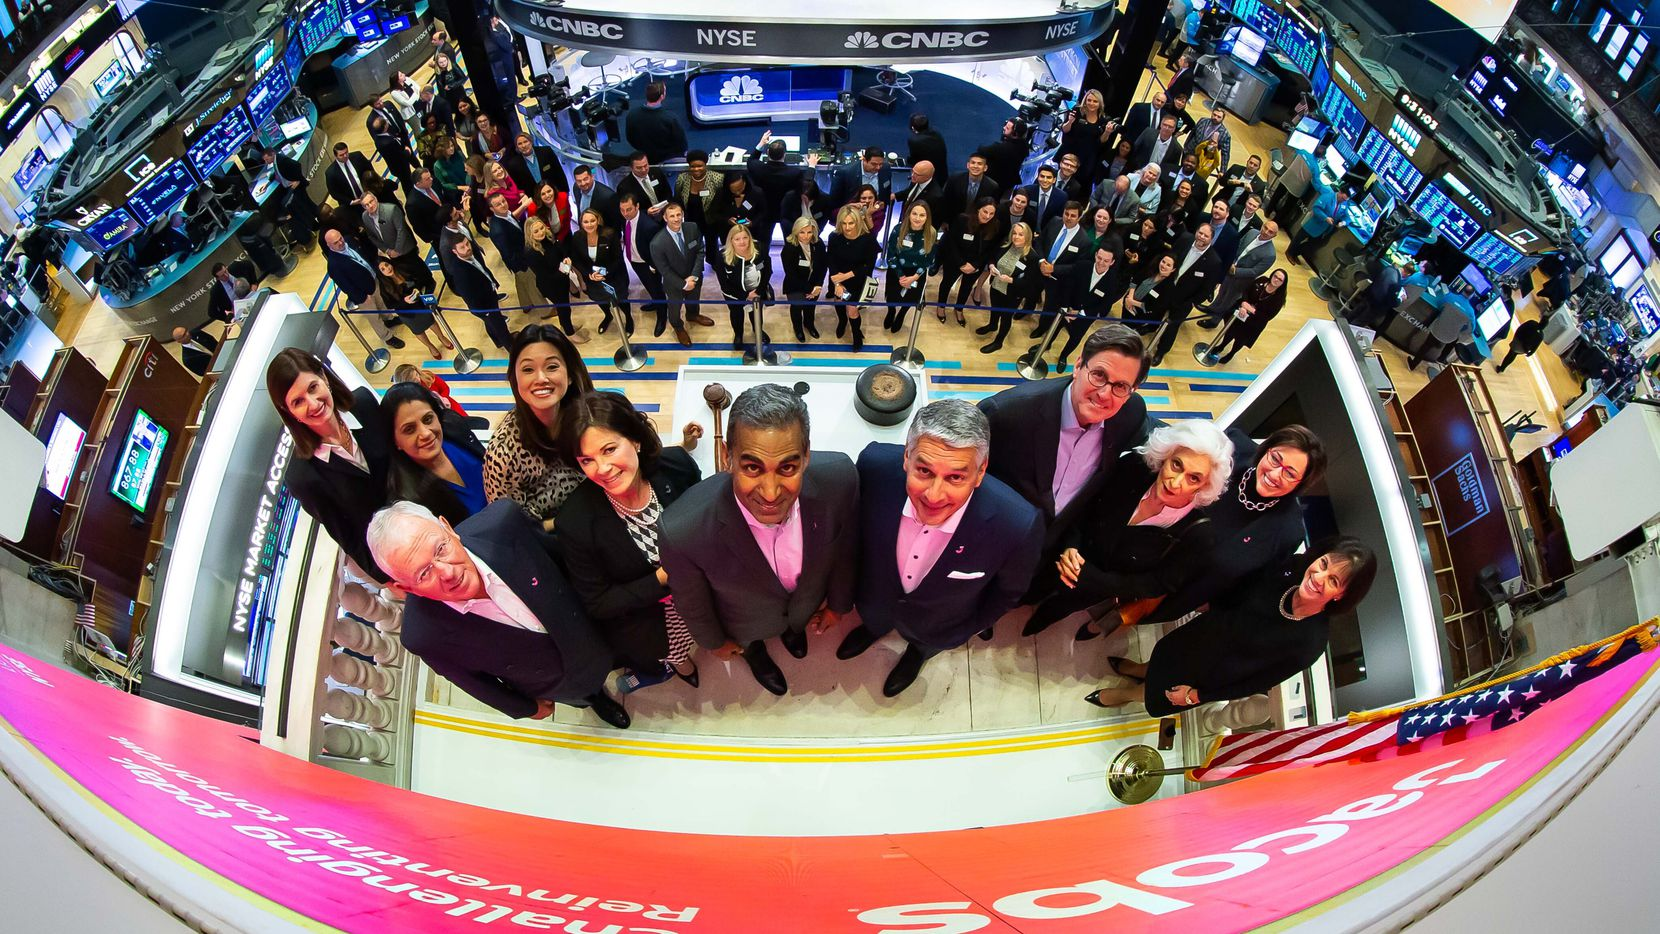 """Steve Demetriou, CEO of Jacobs Engineering Group, center right, with his leadership team, celebrated 30 years of being a public company on the New York Stock Exchange and its new ticker symbol, the single letter """"L"""" on Feb. 4, 2020. The New York Stock Exchange welcomes Jacobs (NYSE: J) in celebration of its 30th anniversary of listing, recent global brand launch, and the unique shift to a single """"J"""" ticker symbol. Chair & CEO Steve Demetriou along with fellow leaders and board members, joined by Betty Liu, NYSE Executive Vice Chairman, ring The Opening Bell  ."""